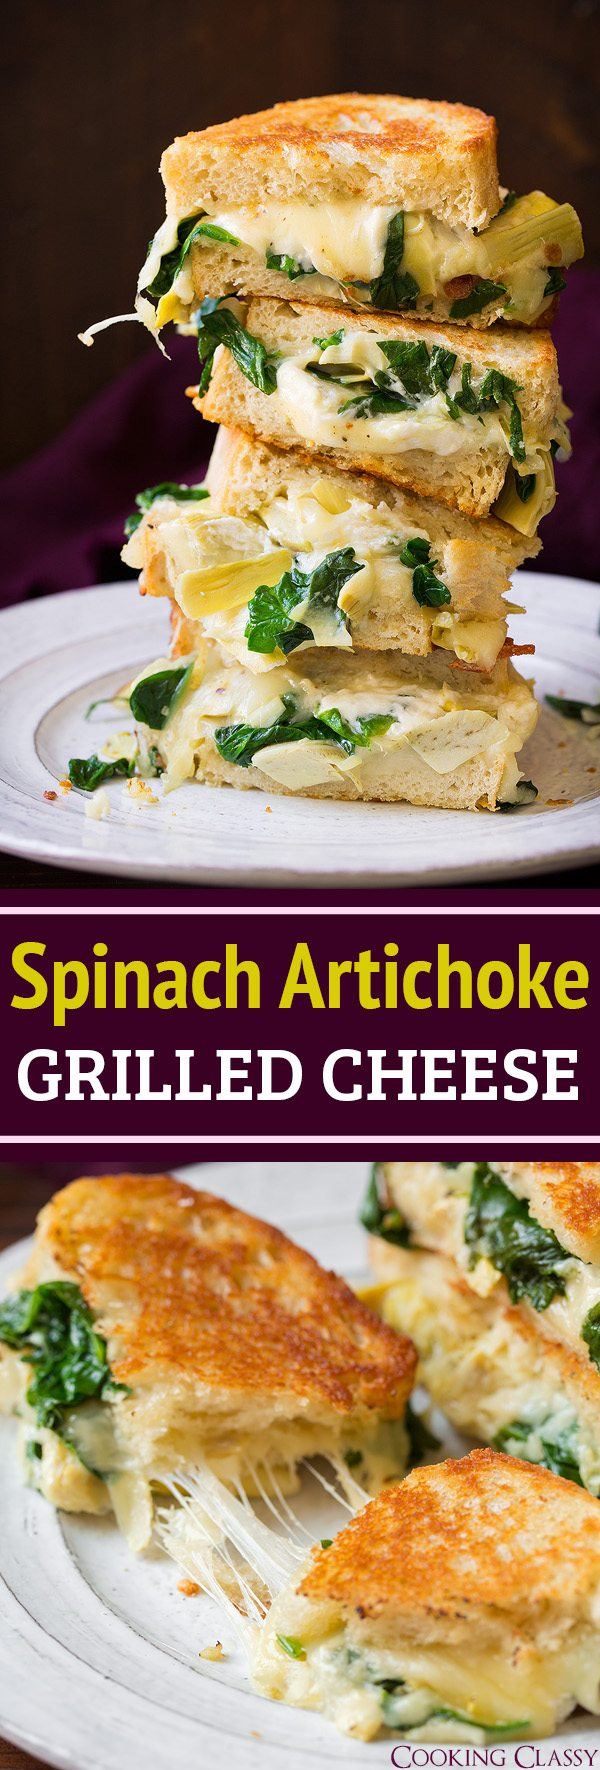 http://www.cookingclassy.com/spinach-artichoke-grilled-cheese/